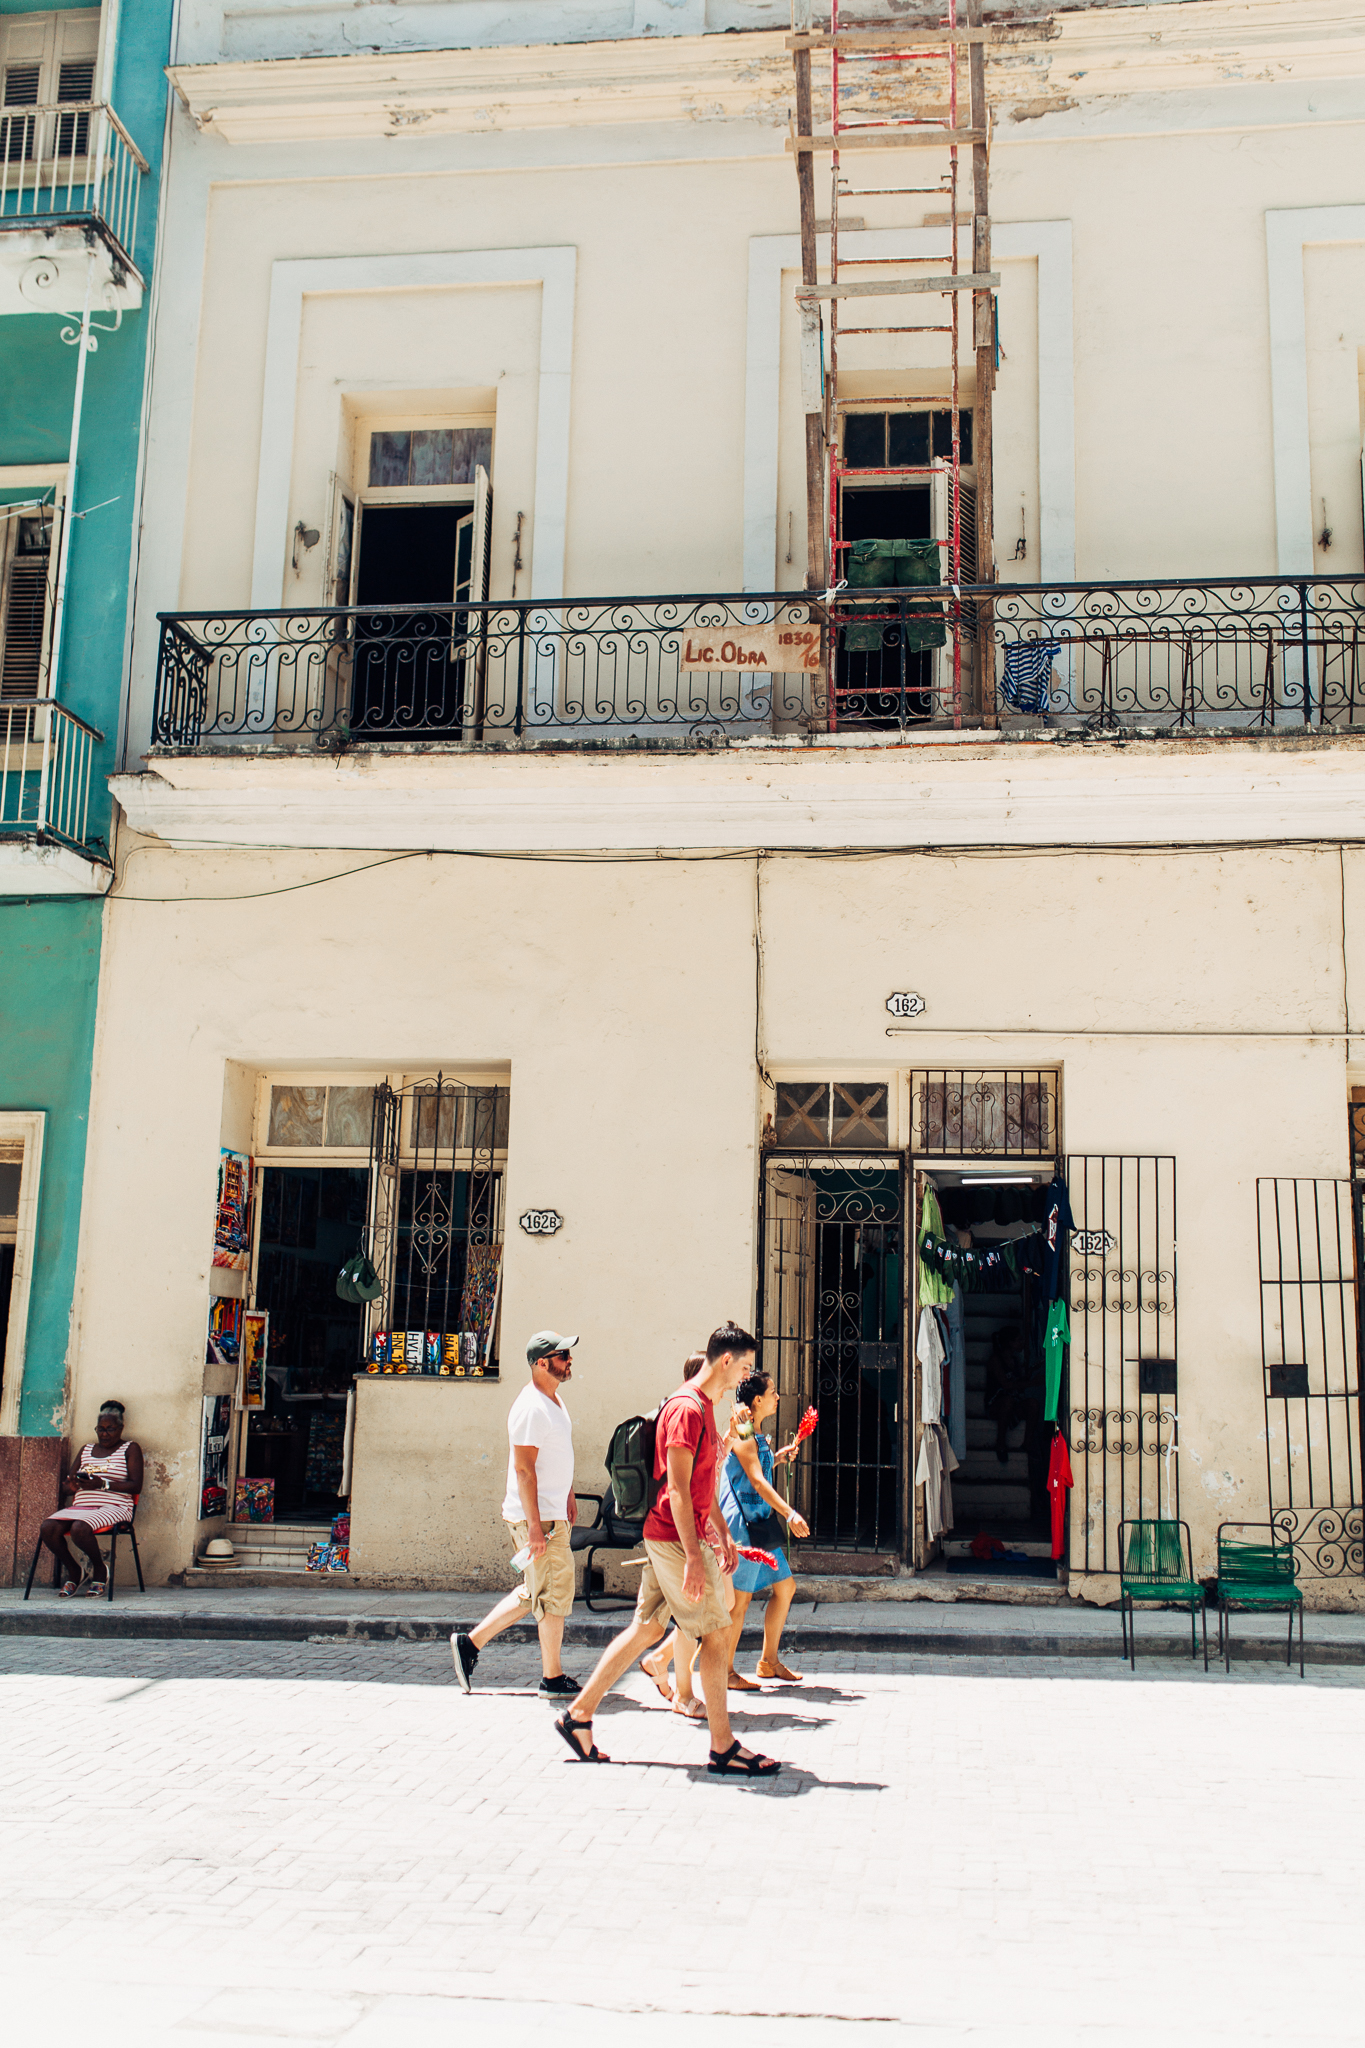 5 DAYS IN HAVANA